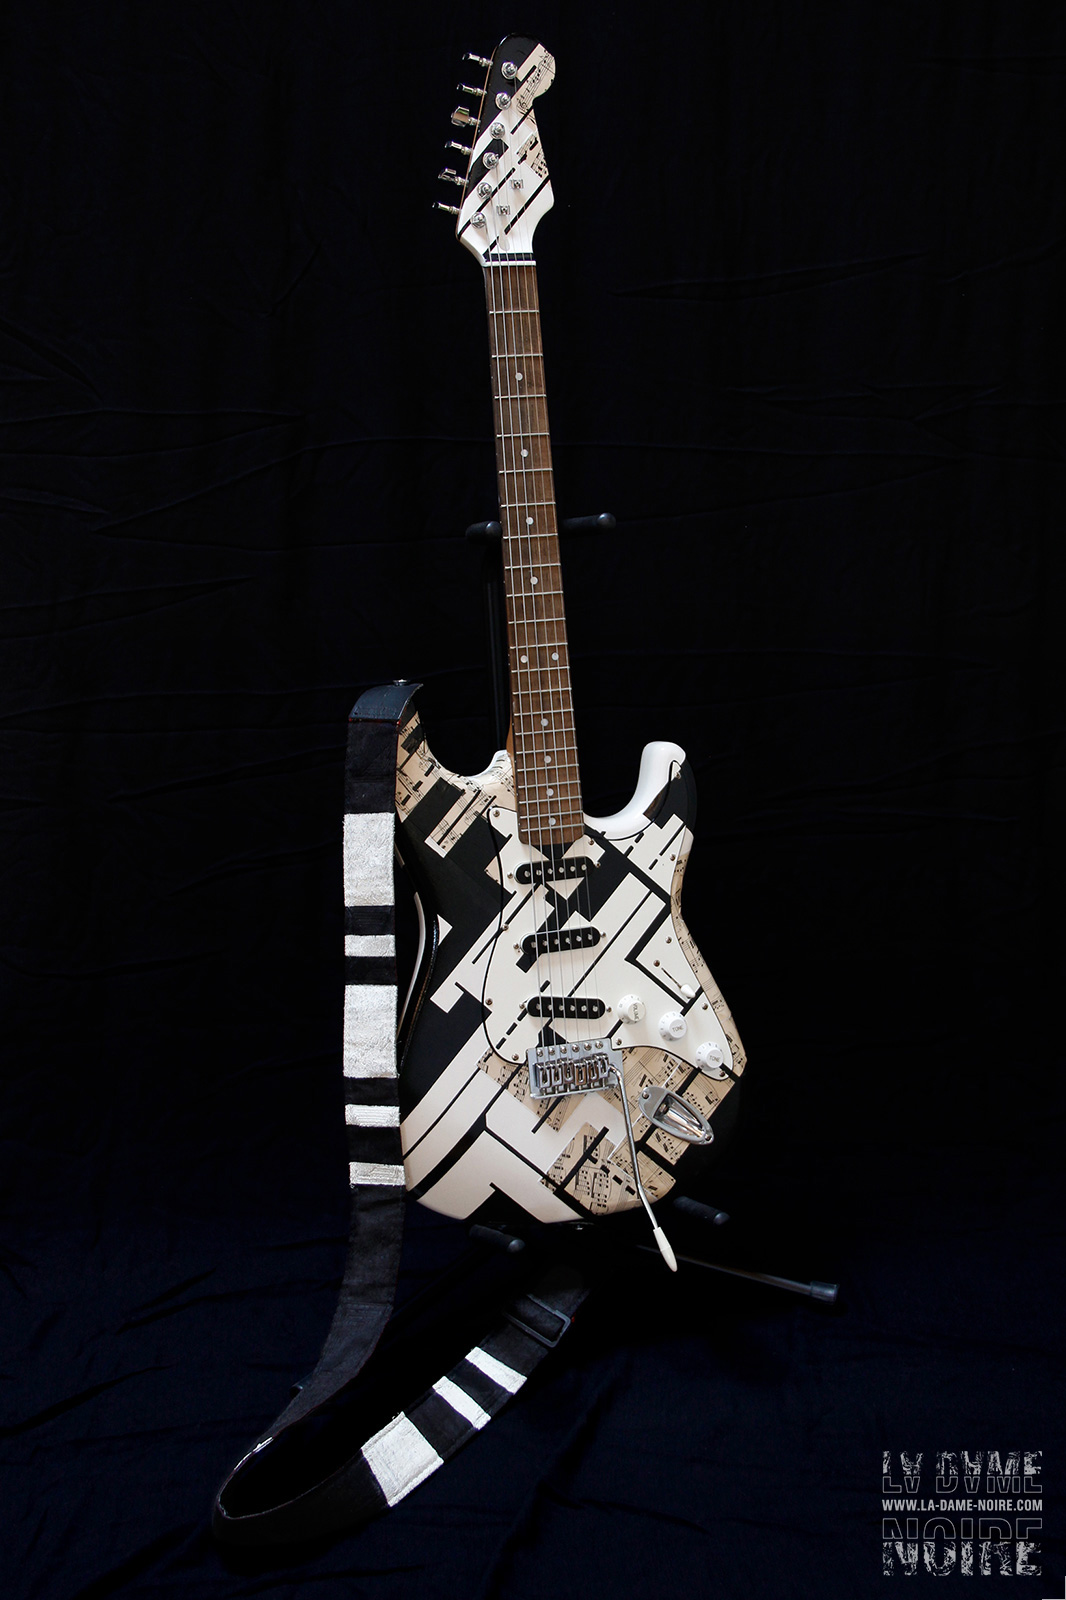 Electric guitar painted in black and white